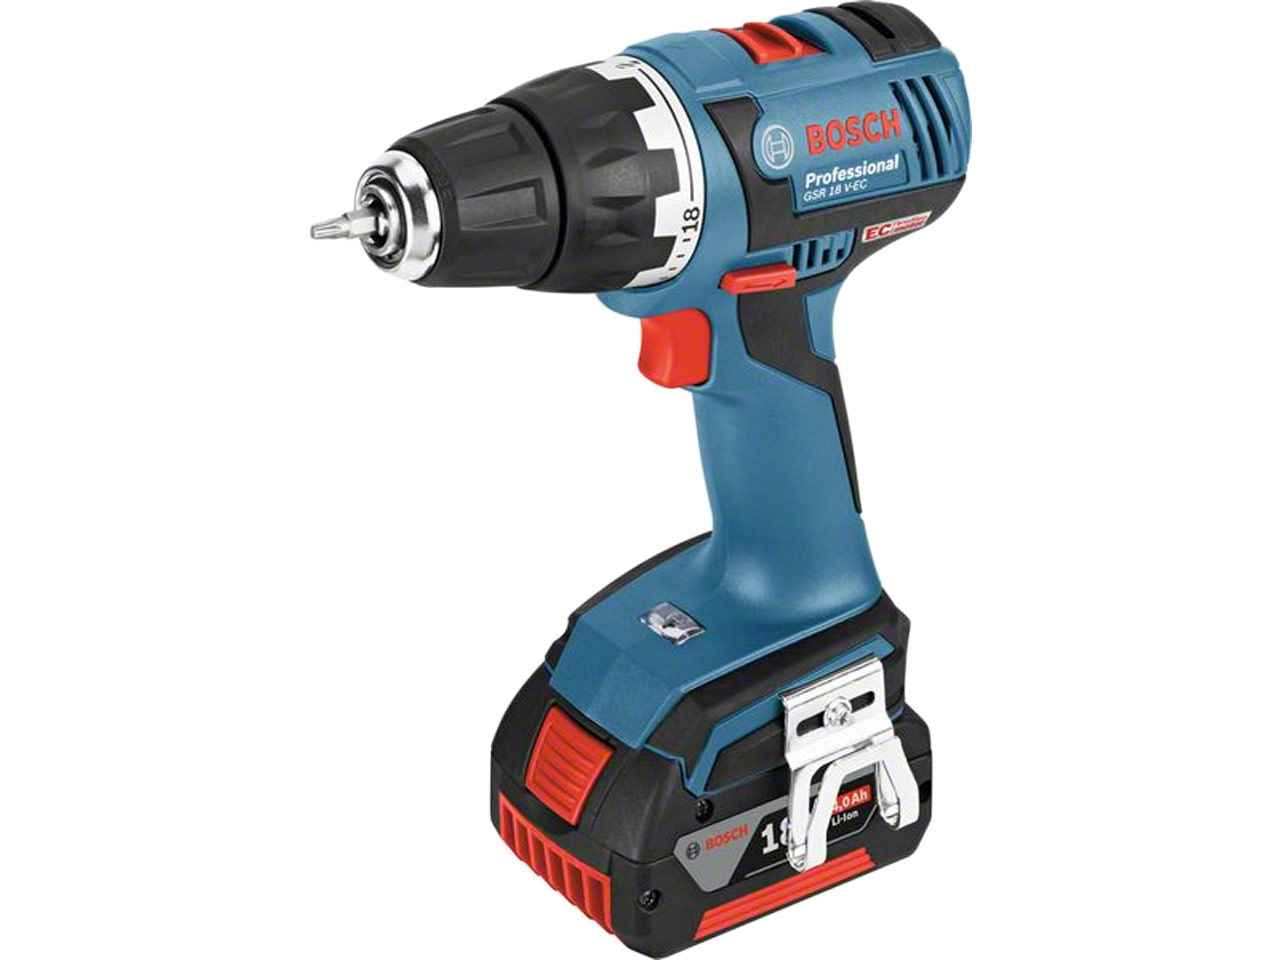 bosch 06019d6100 gsr18vecn 18v brushless drill driver bare. Black Bedroom Furniture Sets. Home Design Ideas